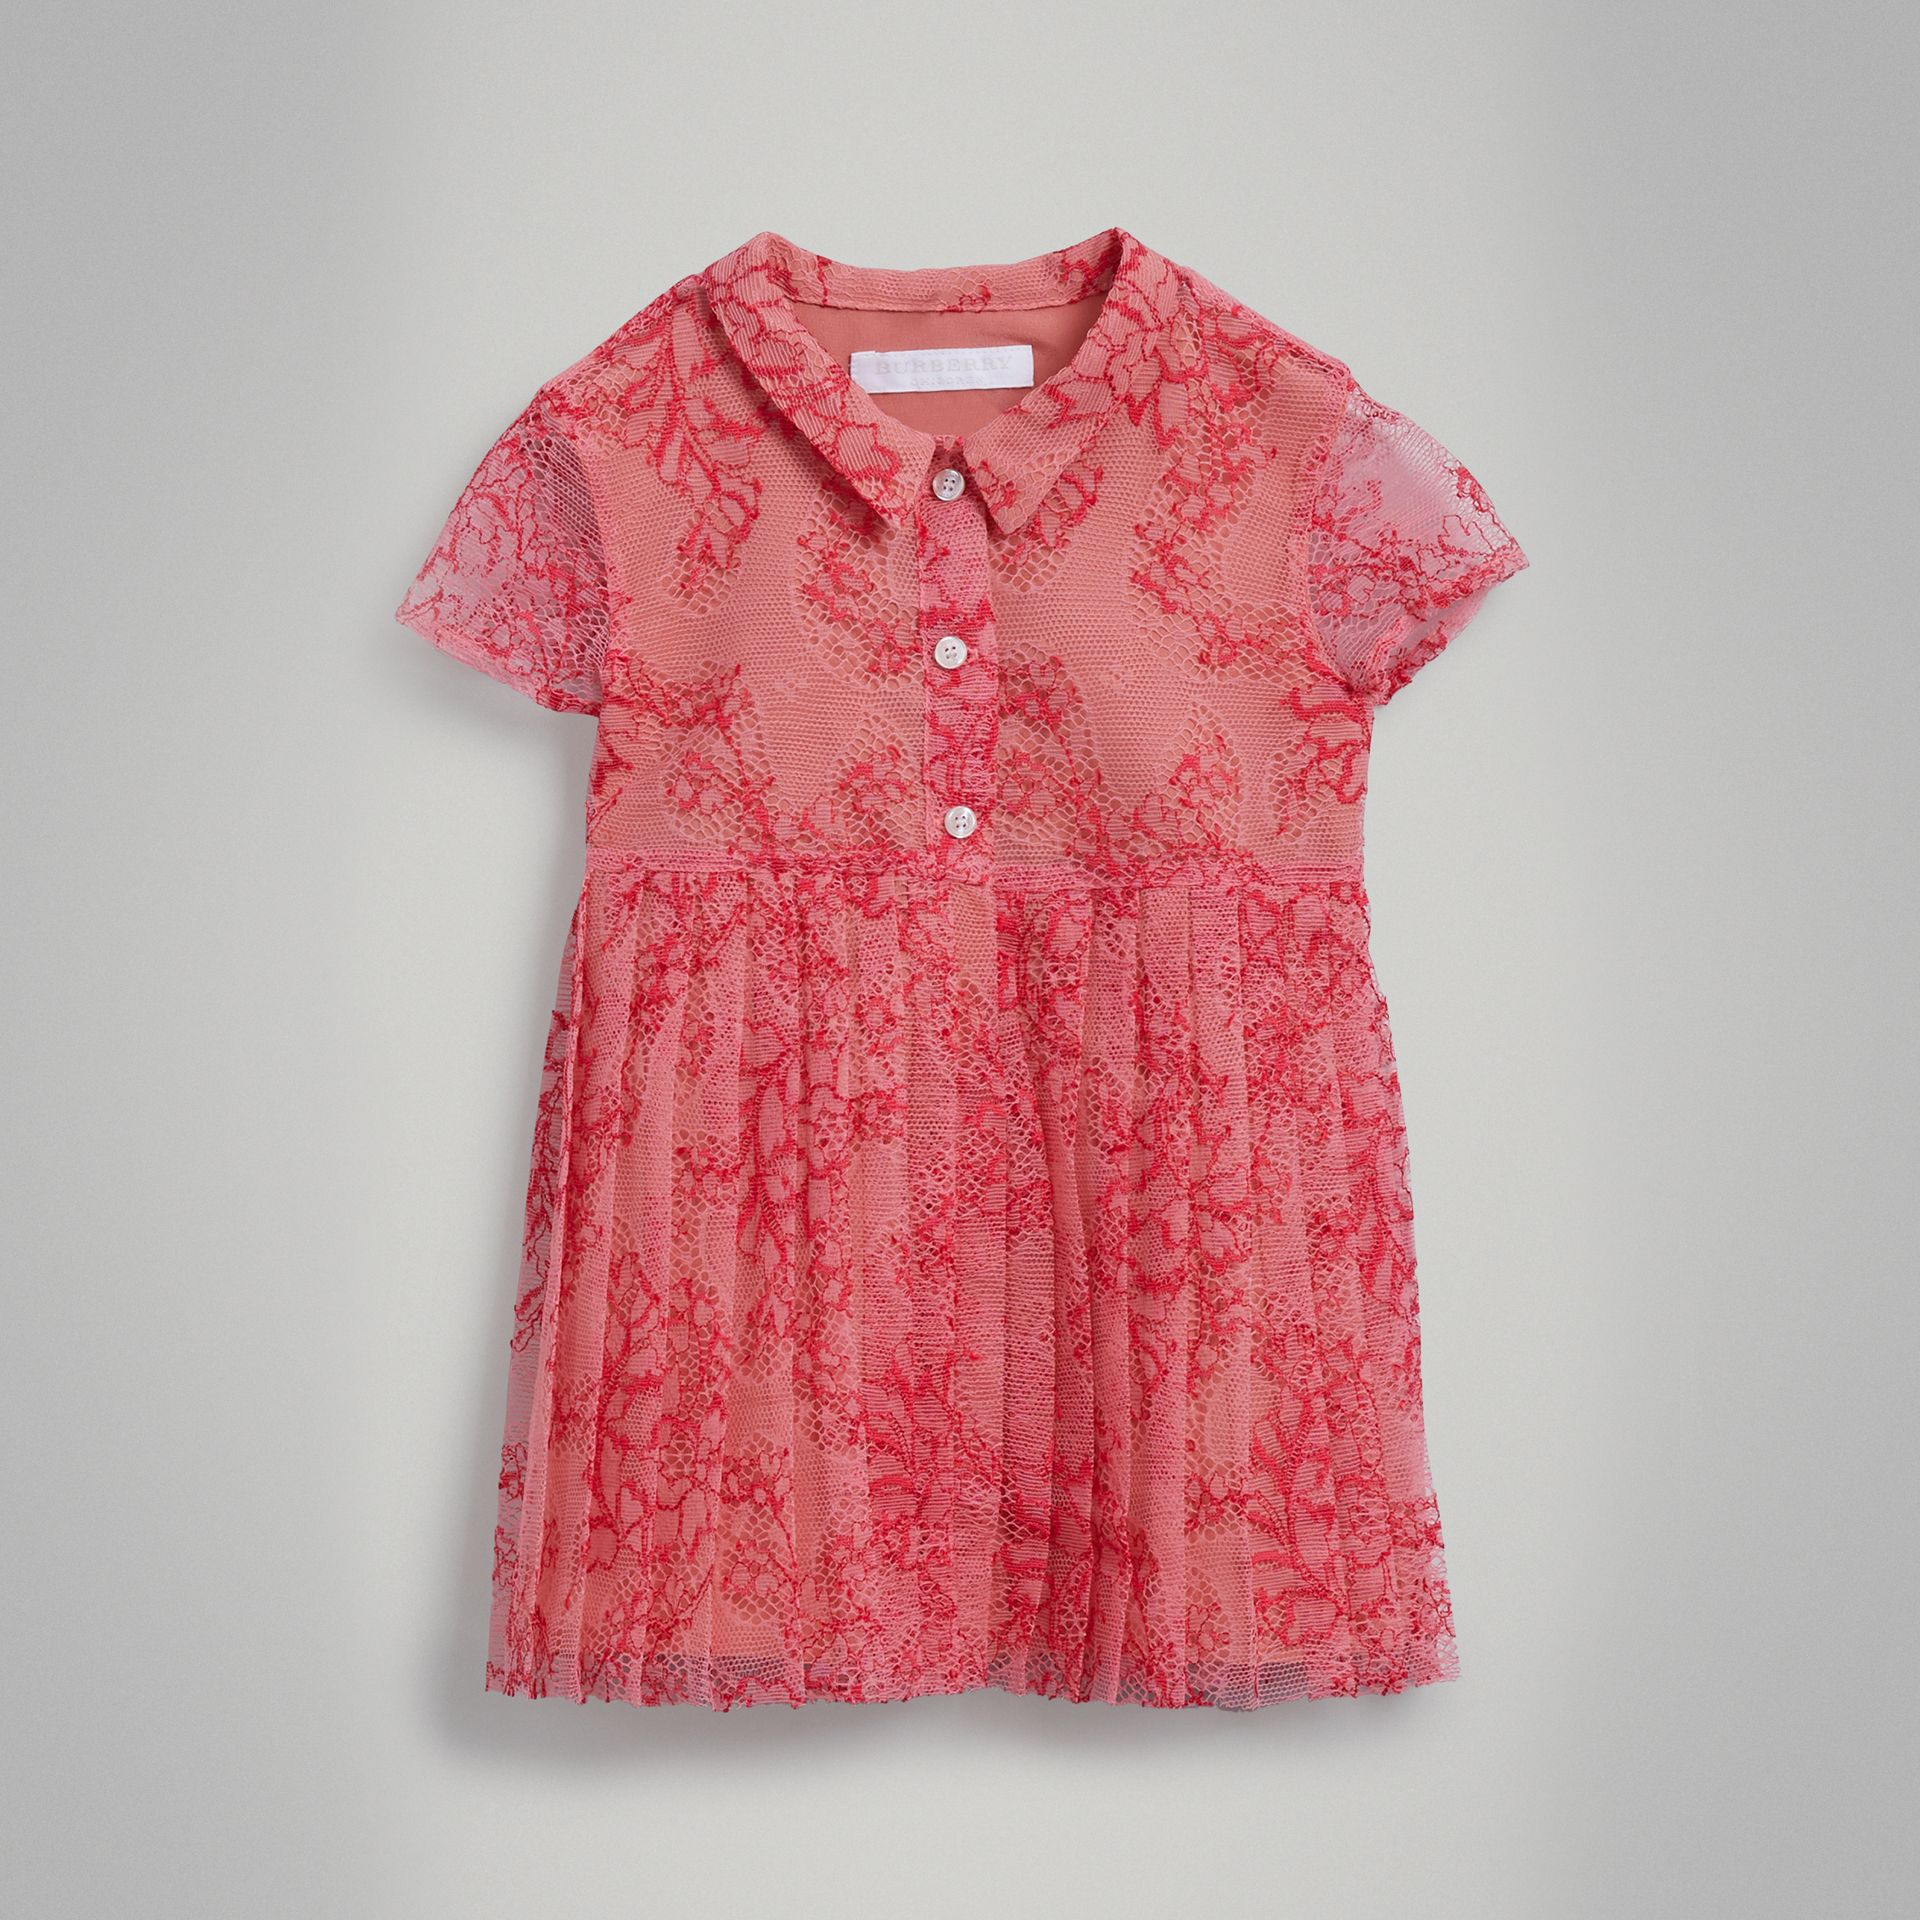 Pleated Lace Dress in Pale Apricot/coral - Children | Burberry - gallery image 0